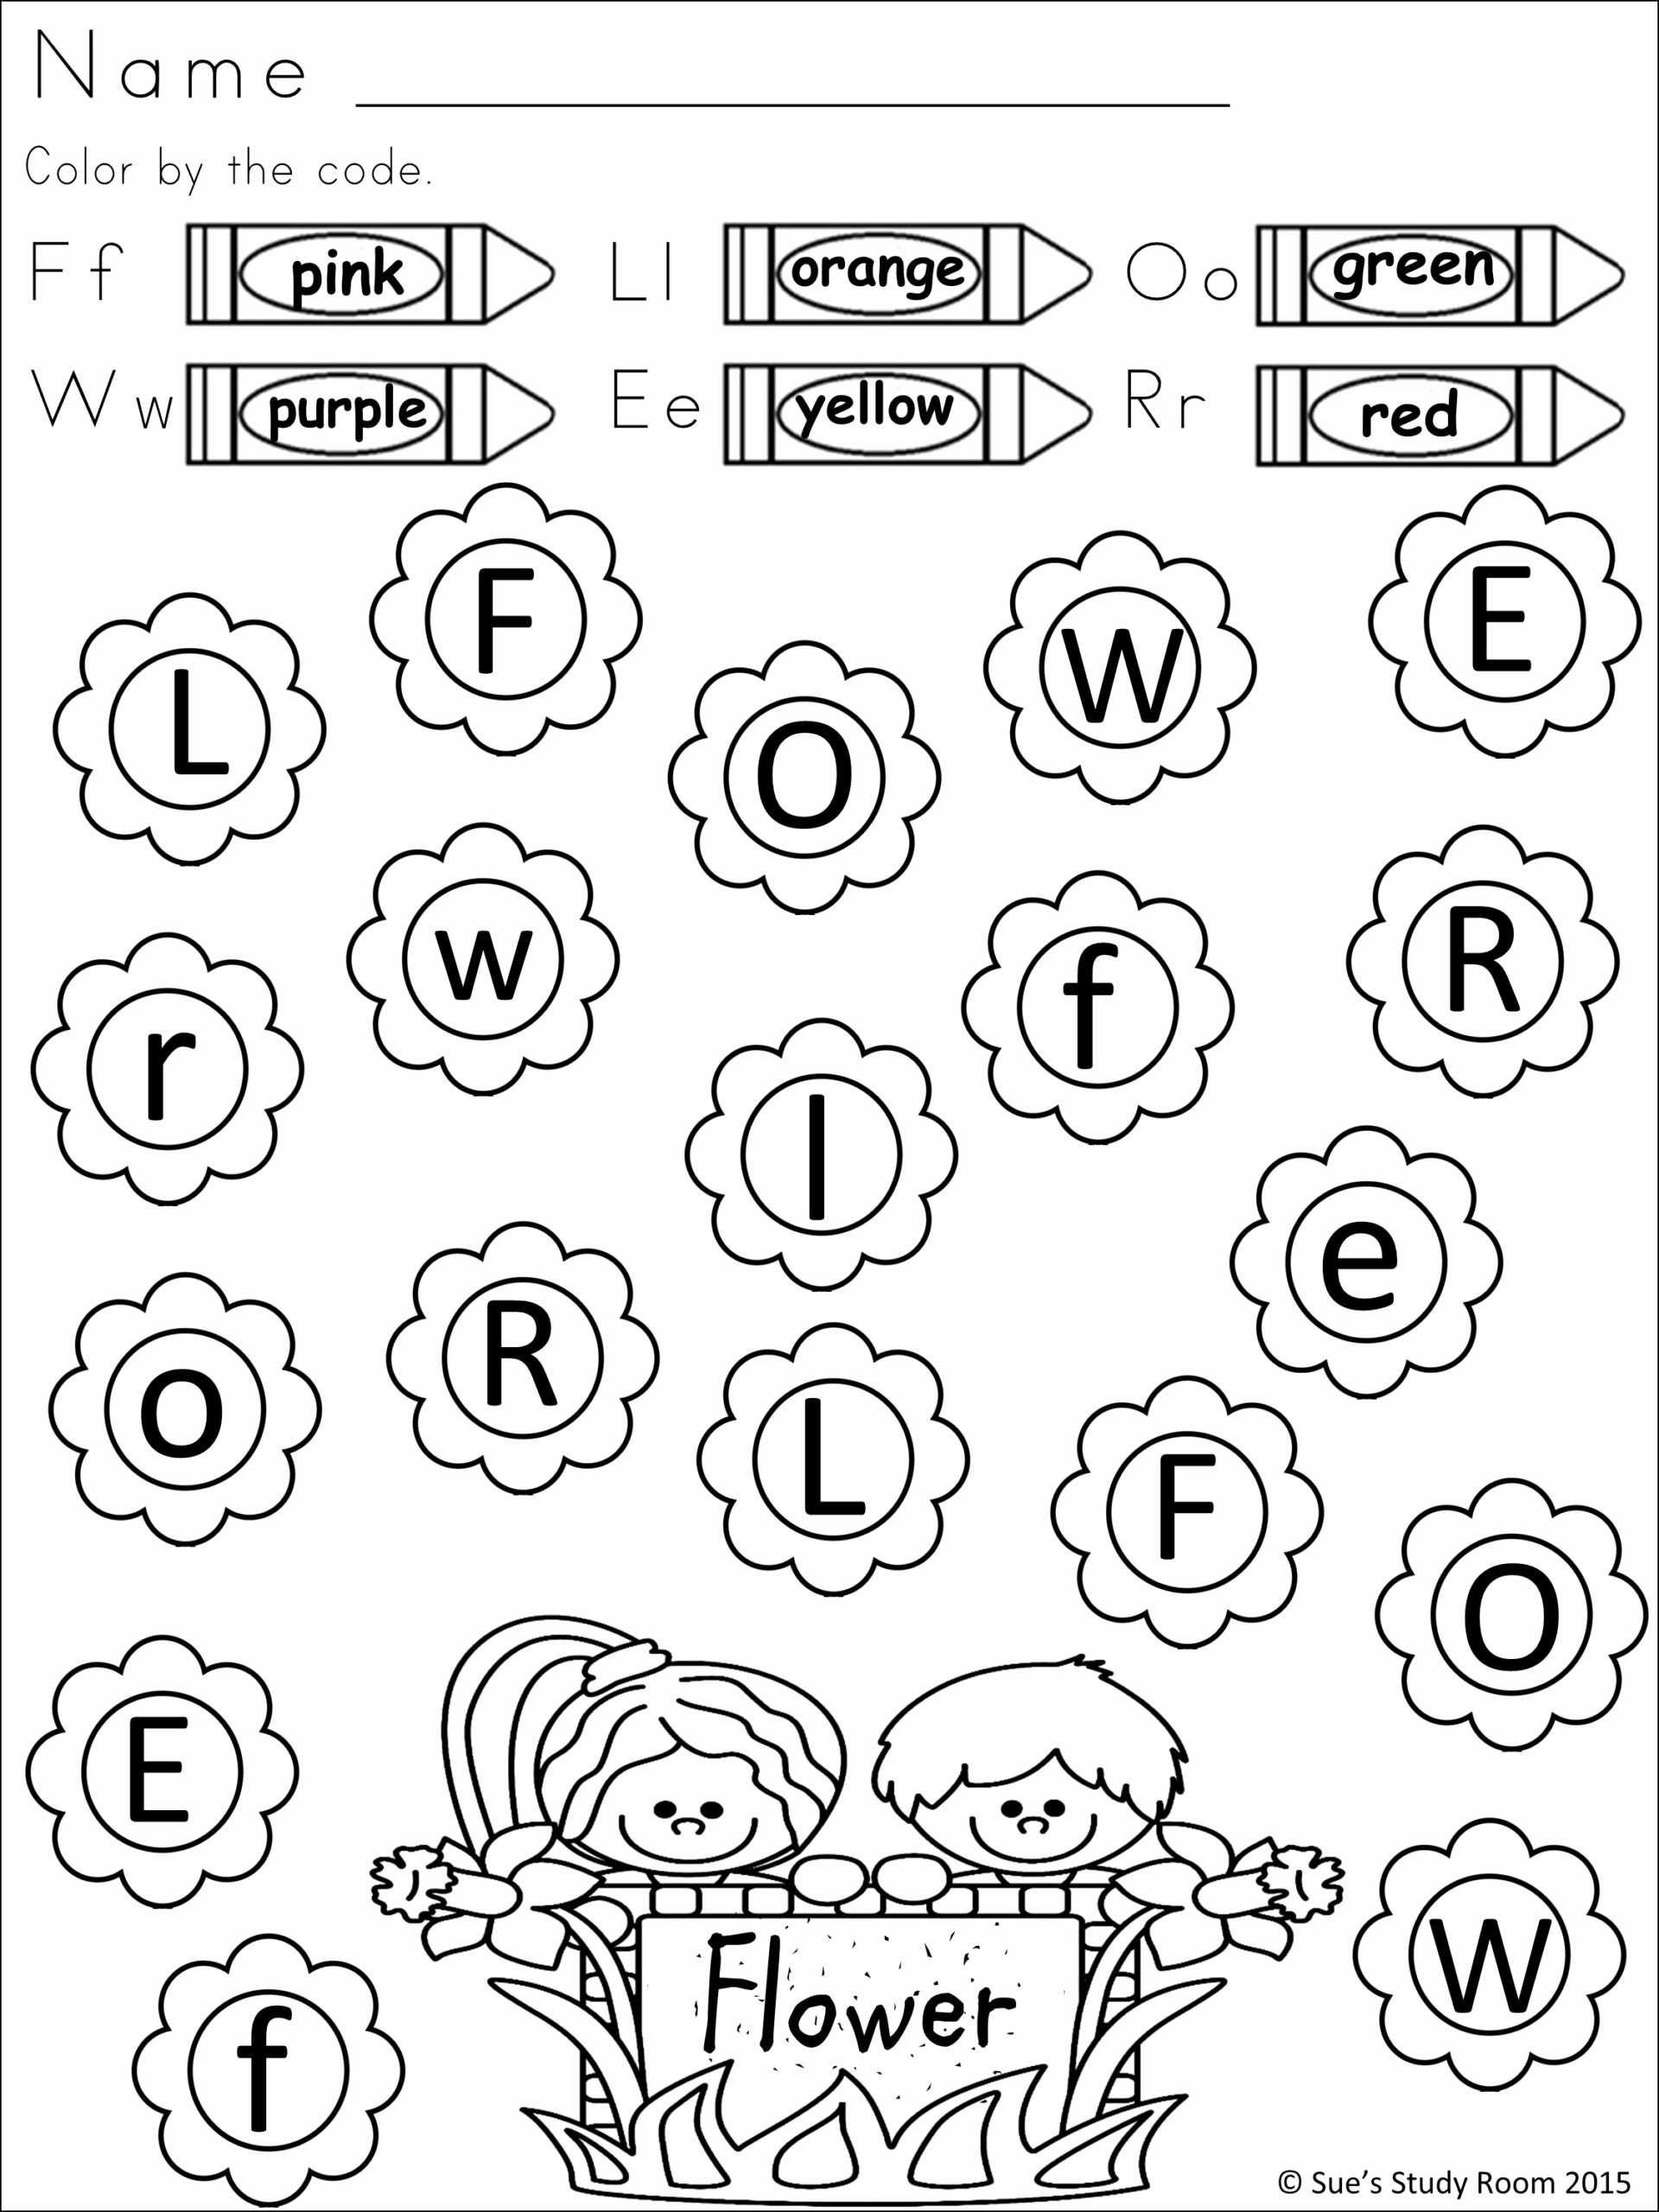 Worksheets for Preschoolers Letters Awesome Worksheets Preschool Letter Recognition Worksheets